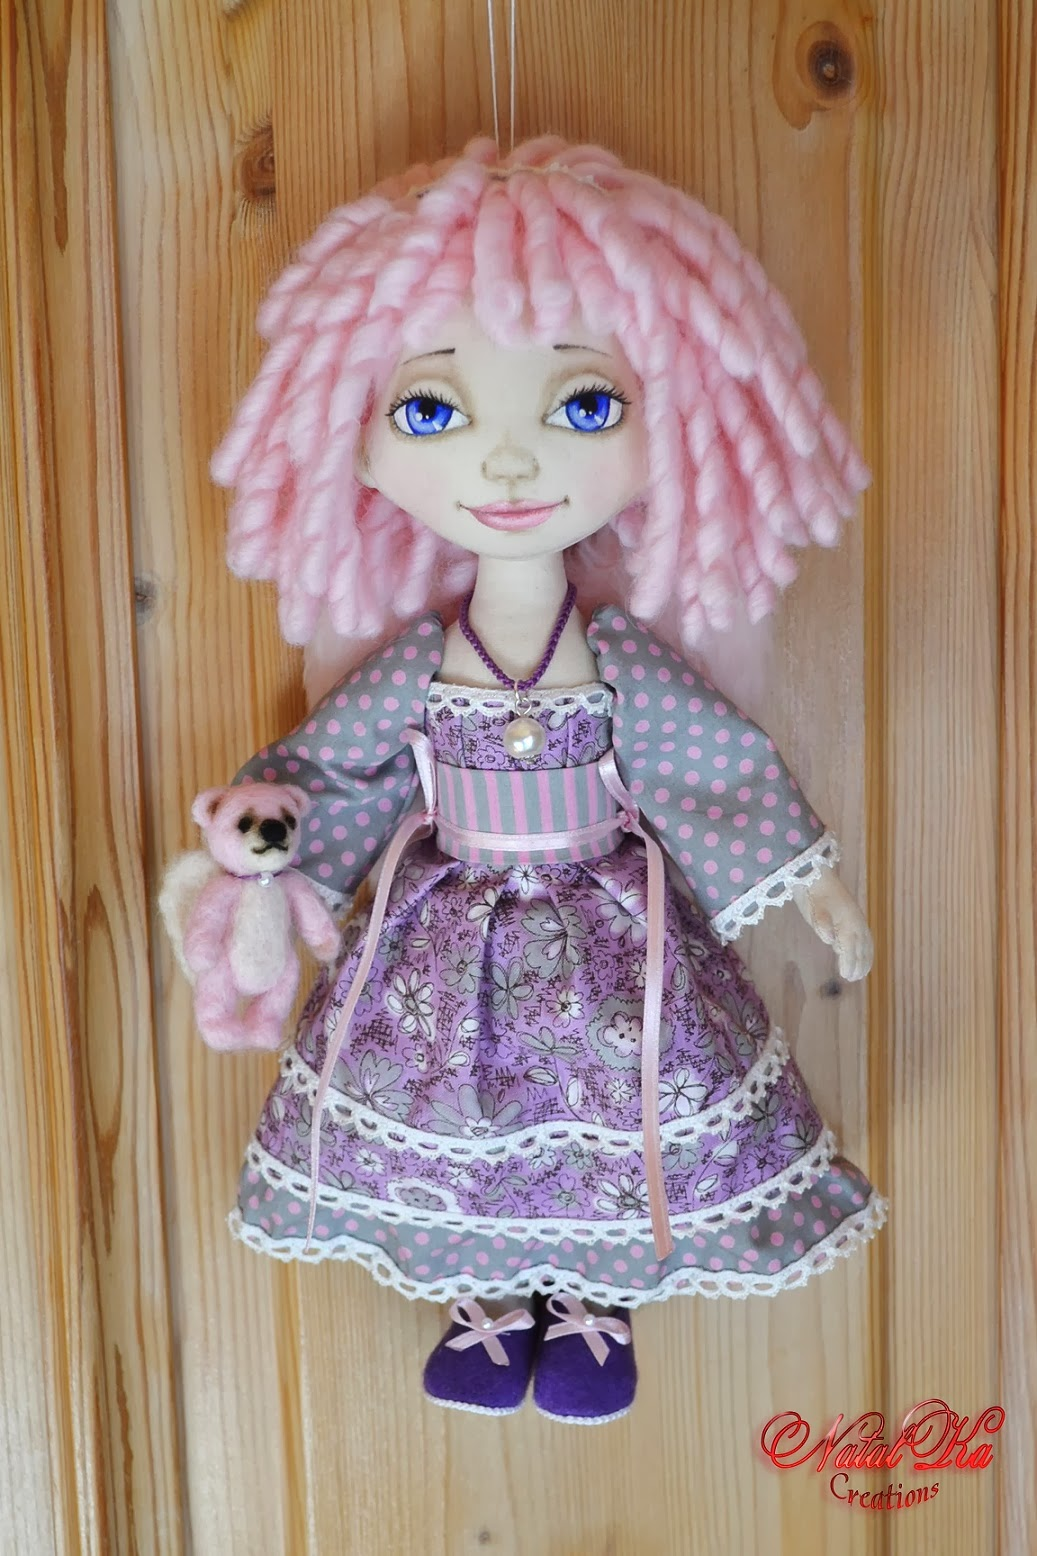 Cloth art doll angel handmade by NatalKa Creations. Авторская текстильная кукла